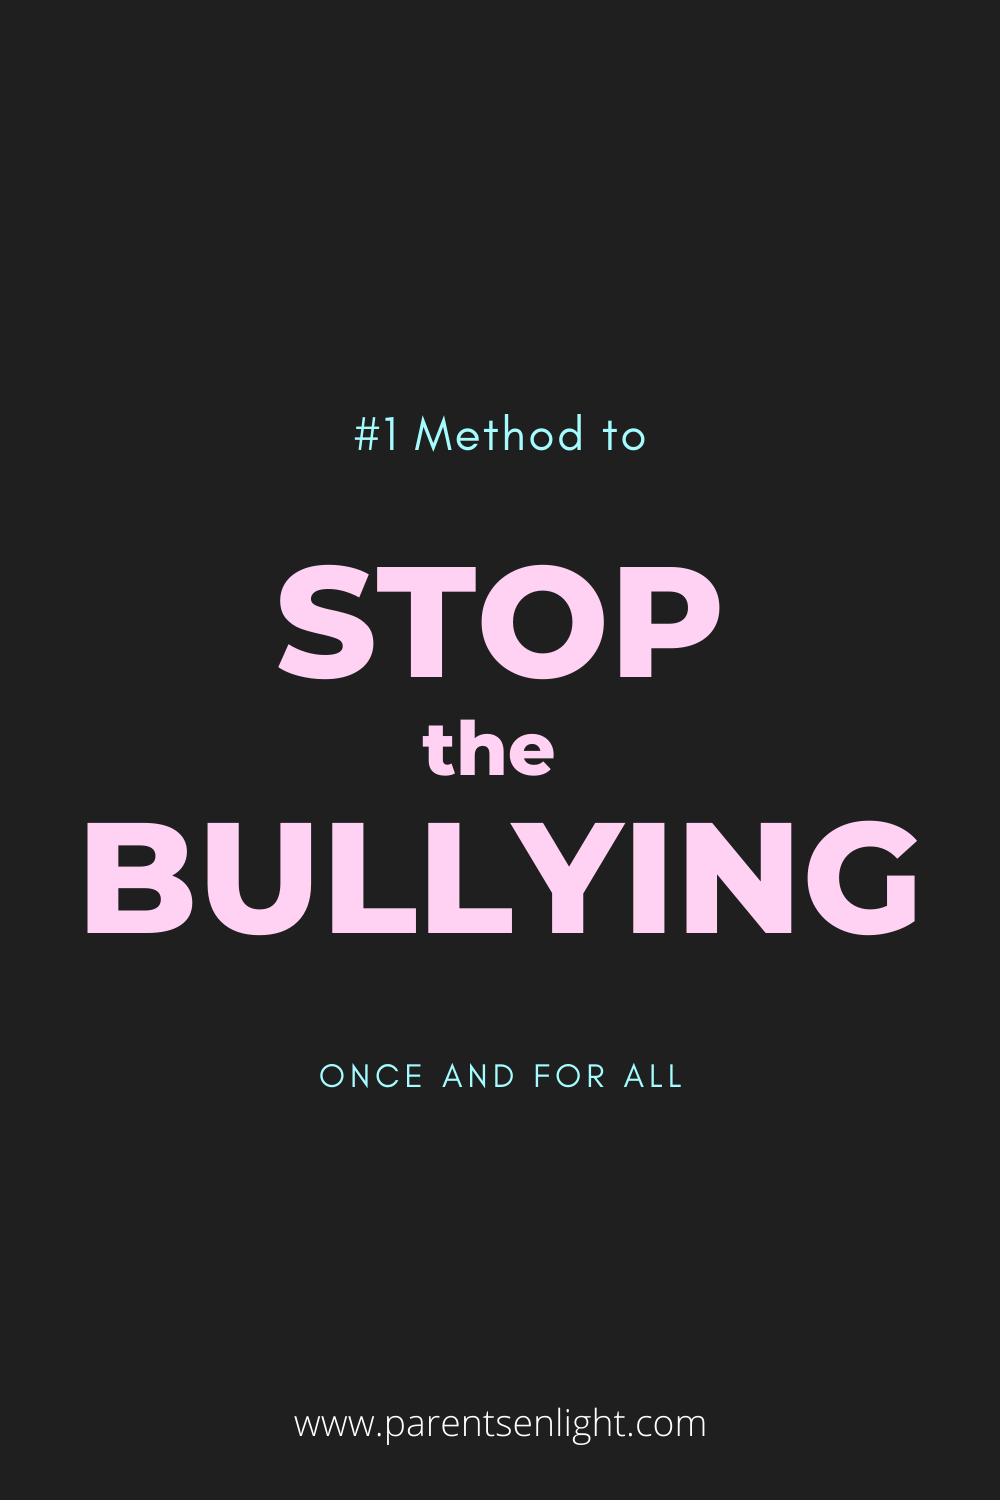 There are bullies everywhere; at school, kindergarten, on the playground, and even at home. Our methods of dealing with bullying, are really only making sure bullying will stay with us for evermore. There;s only one way to empower the bully - and it is right here #bullying #bully #violenceatschool #helpingbullies #positivepsychology #parenting #attachmentparenting #NVC #psoitivecommunication #communicationskills #parentingfromtheheart